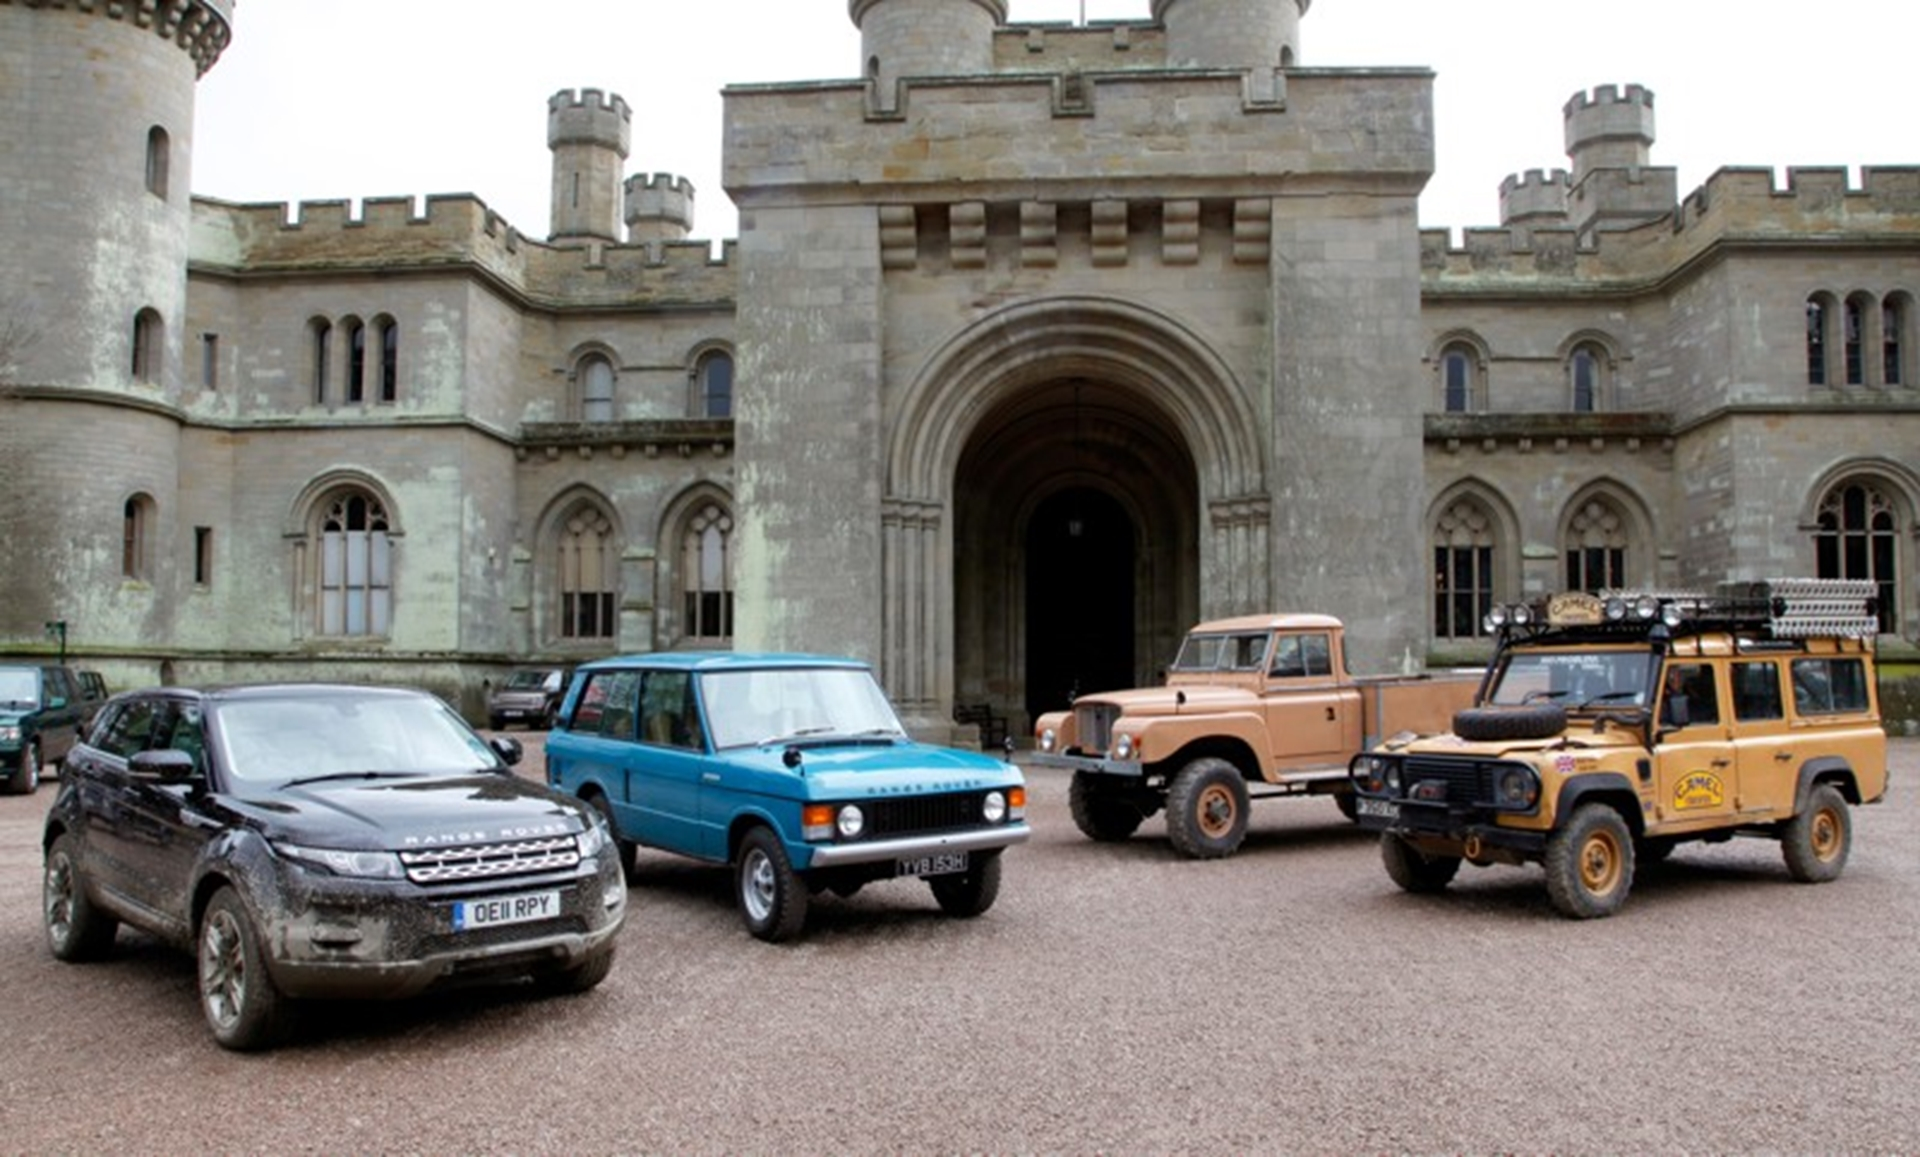 Land Rover celebrates 50 years of off-road testing & development